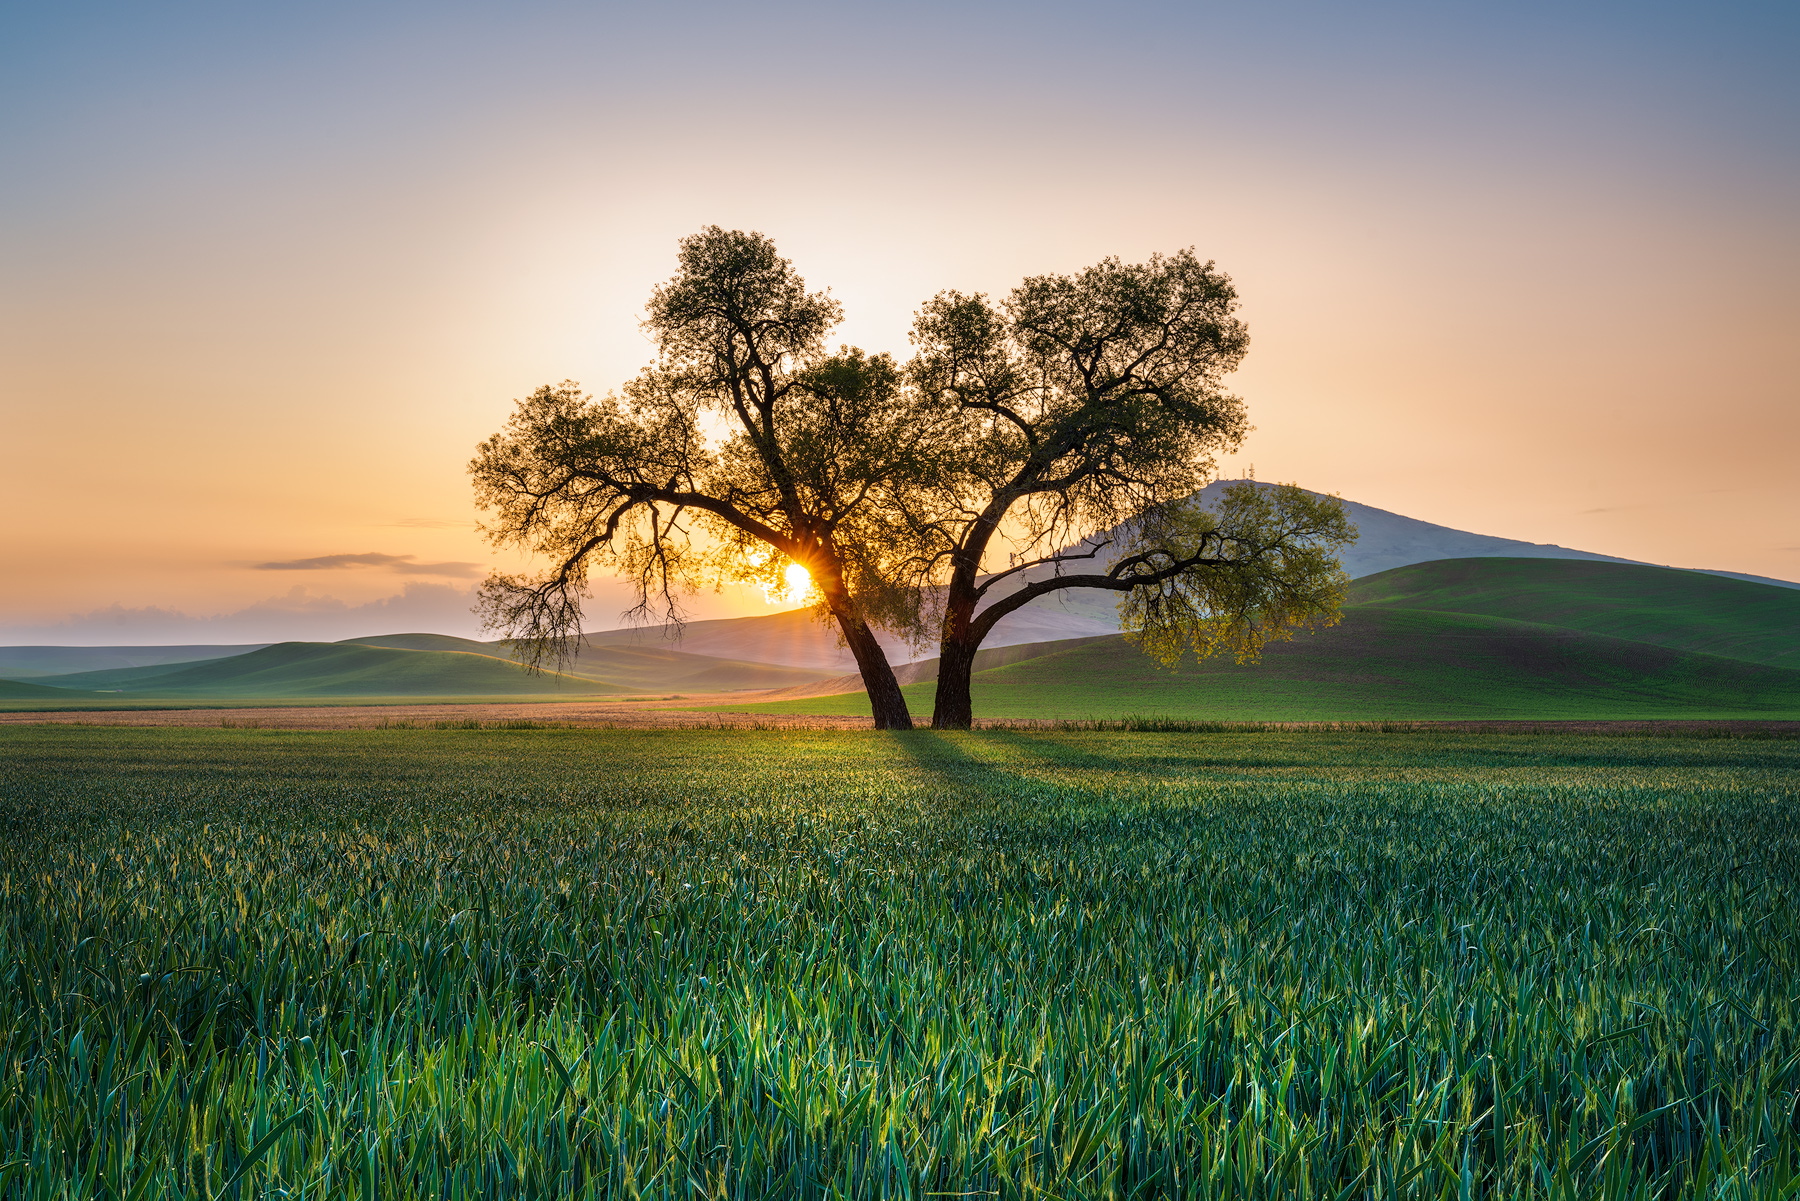 NATURE FINE ART LIMITED EDITION OF 100The rising sun over Steptoe butte illuminates the dew drops on this field of wheat.&nbsp...